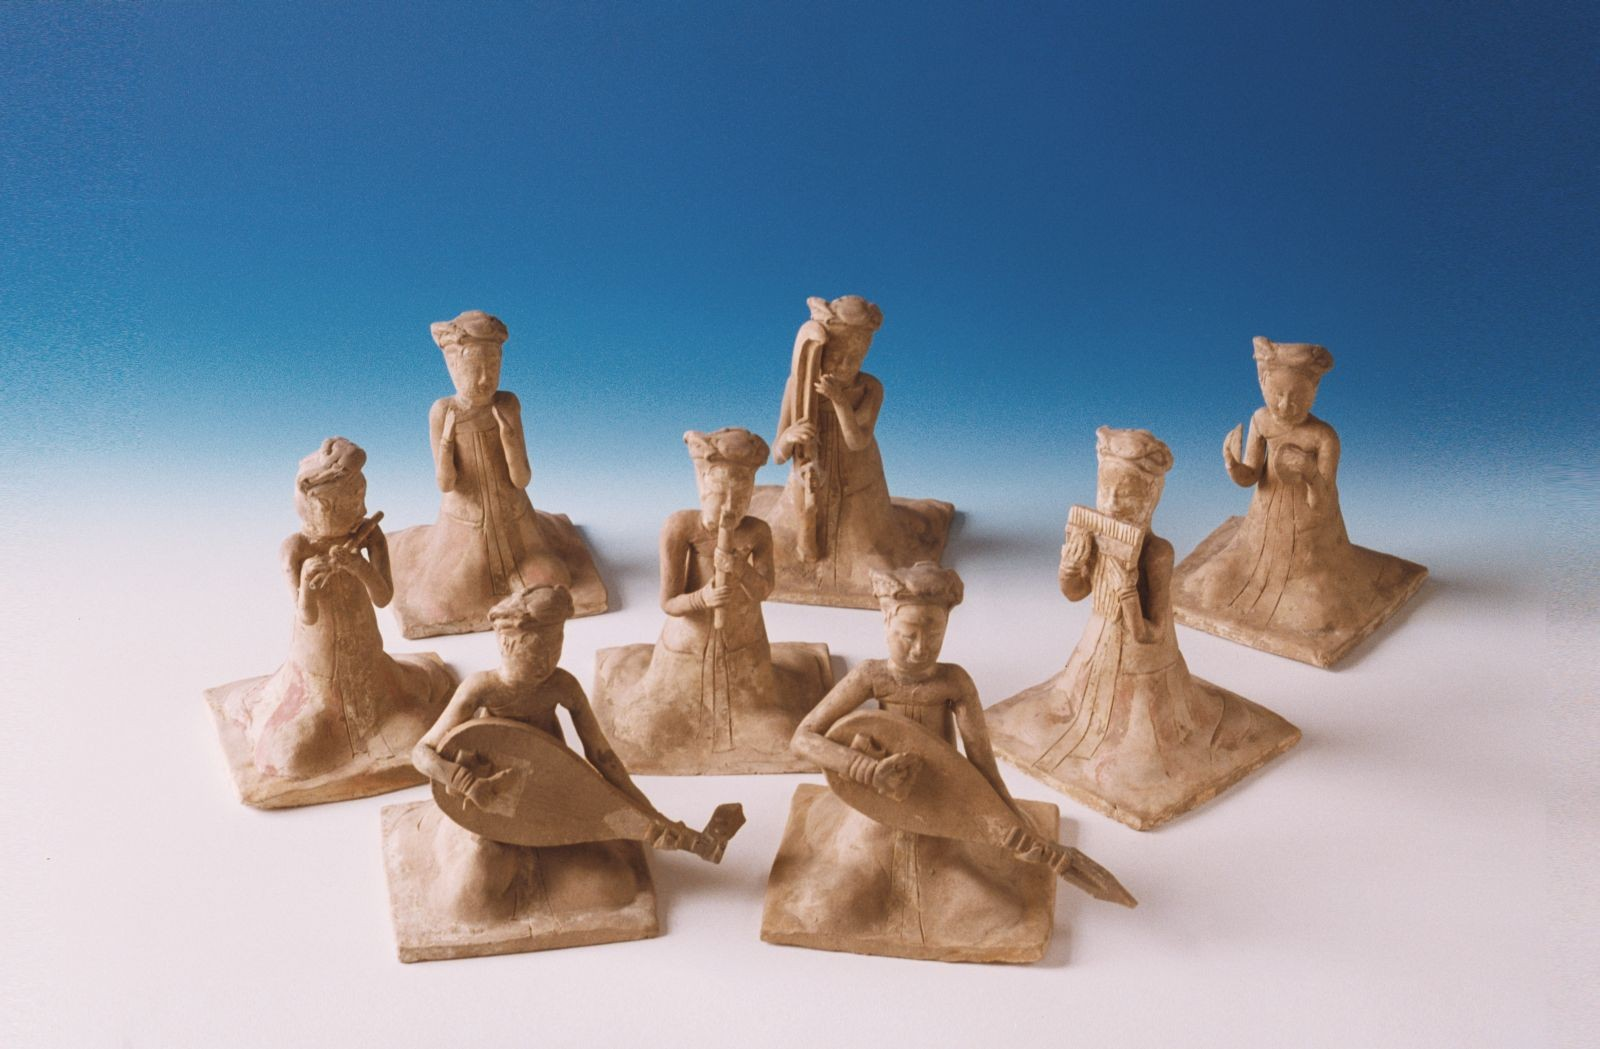 Ceramic statues of women playing music - Sui Dynasty (581-618 AD)